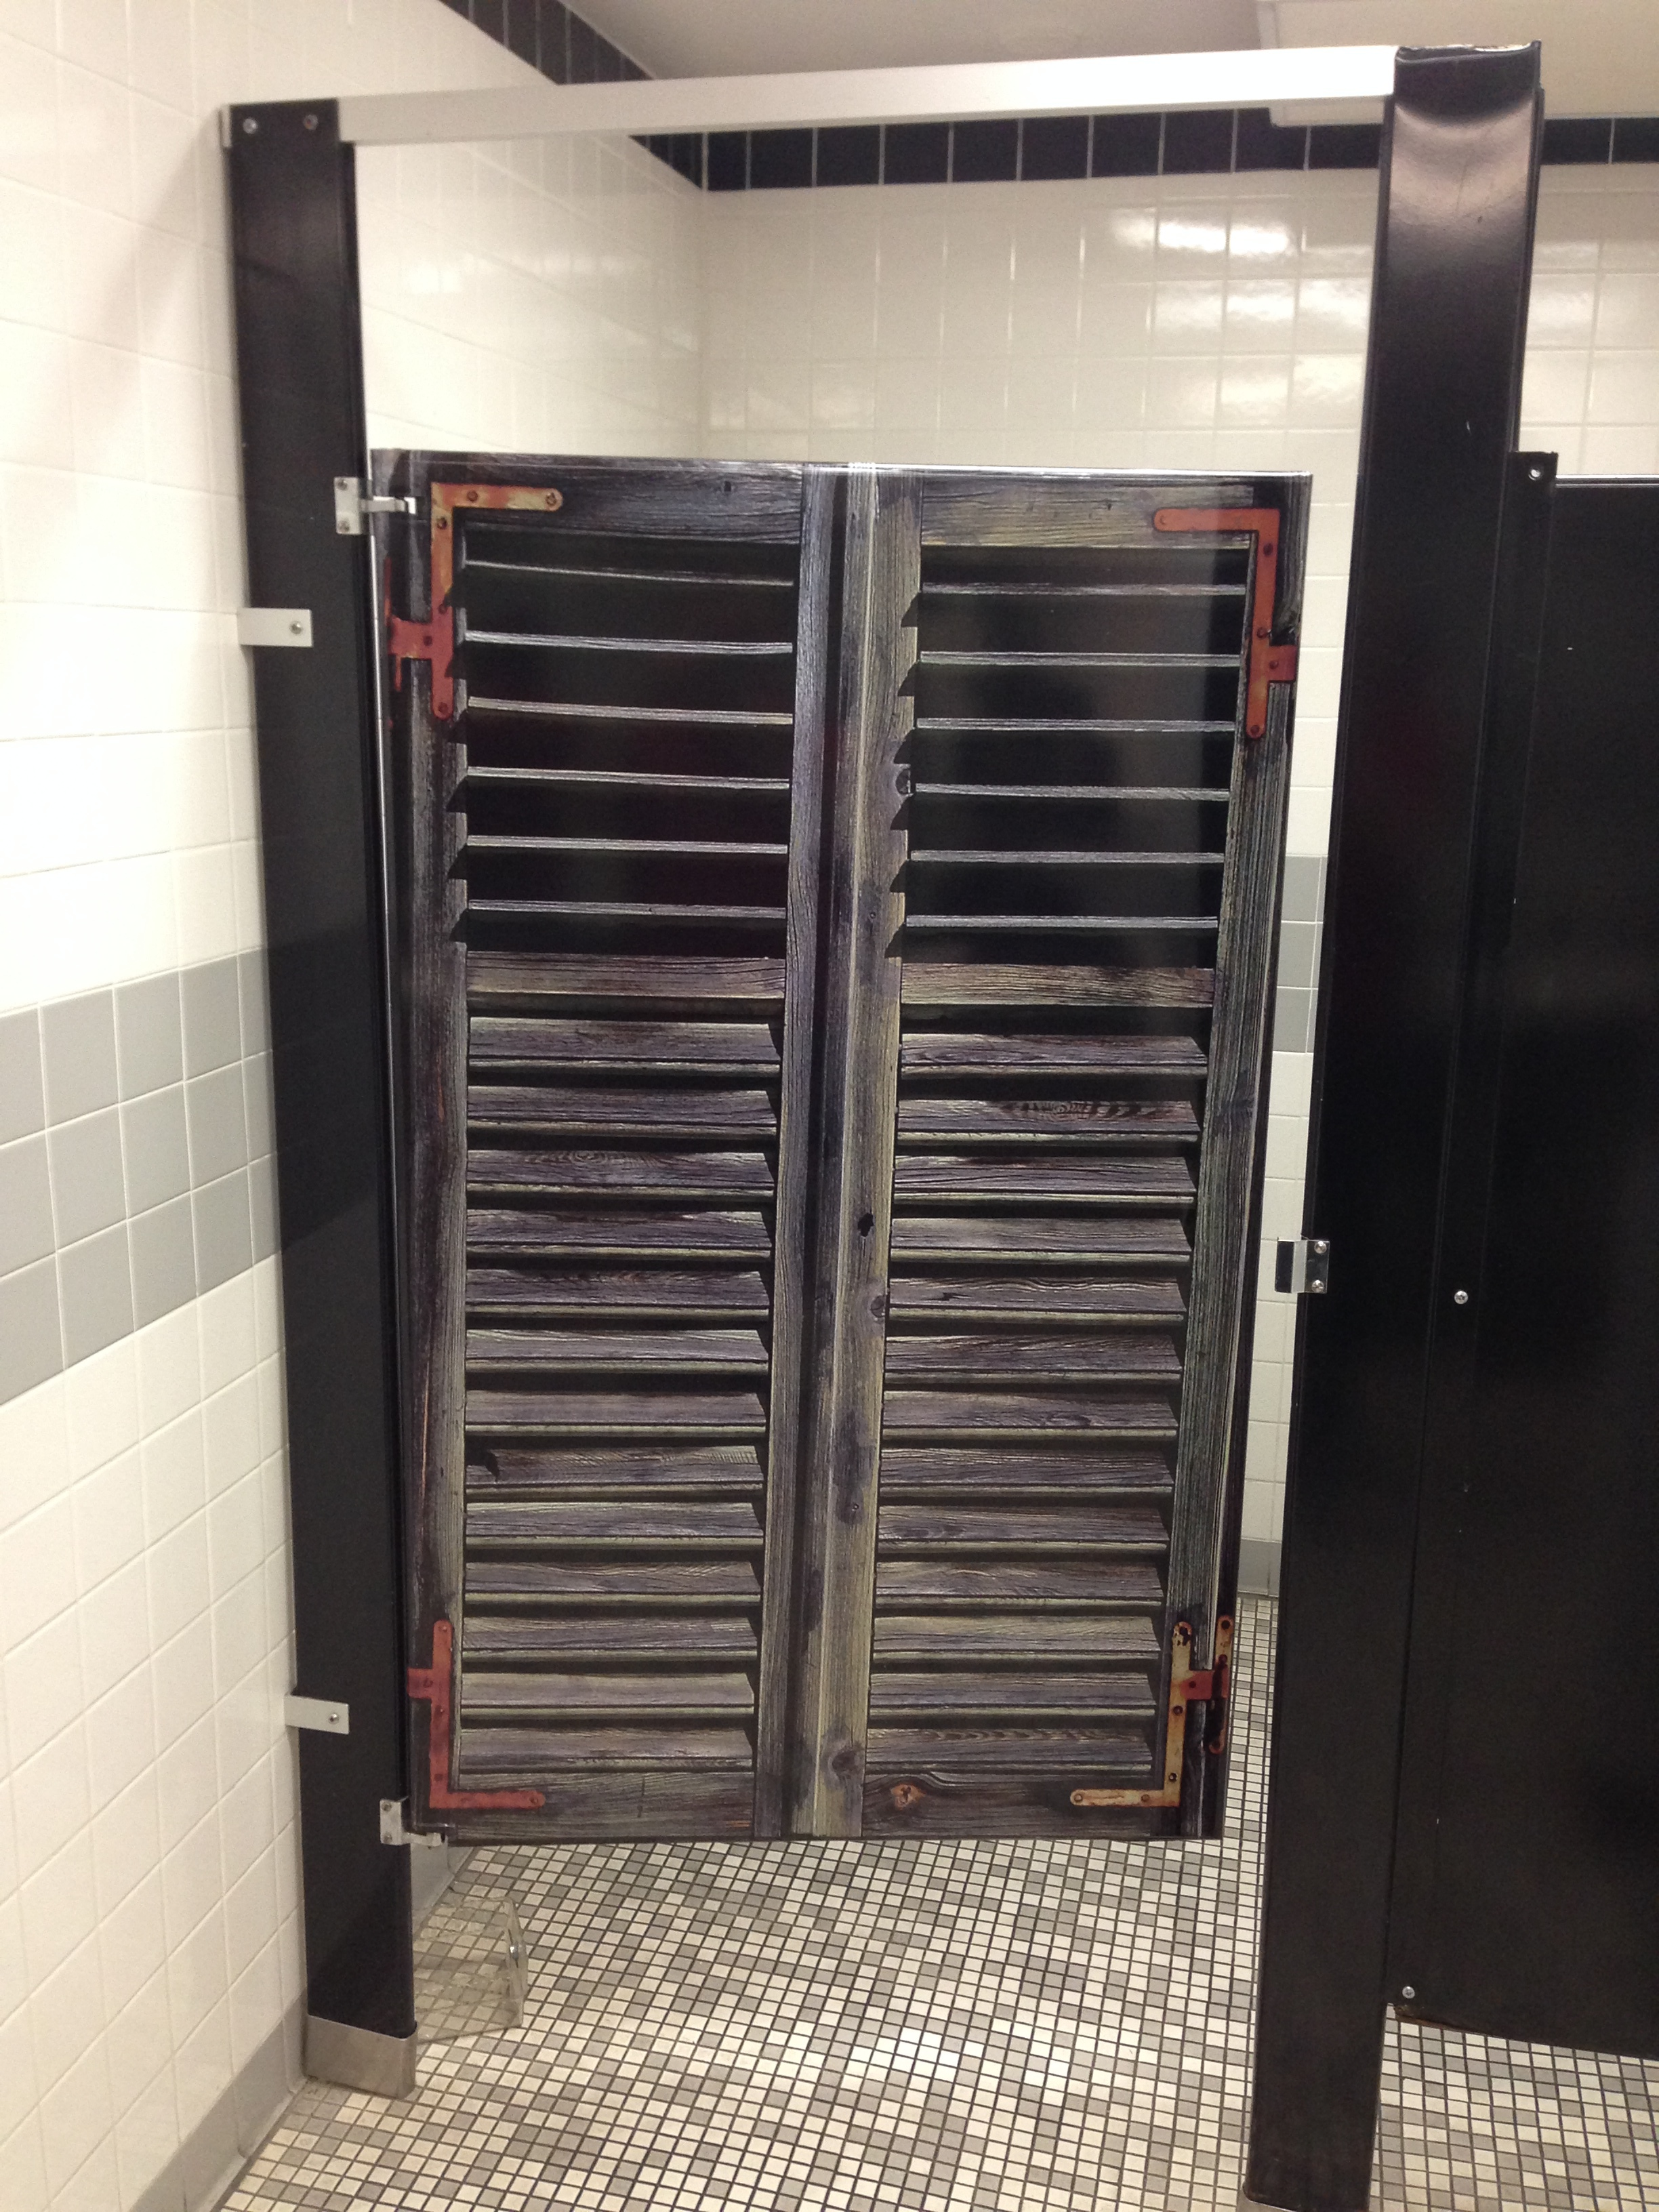 Restroom stall door wraps - Shutters